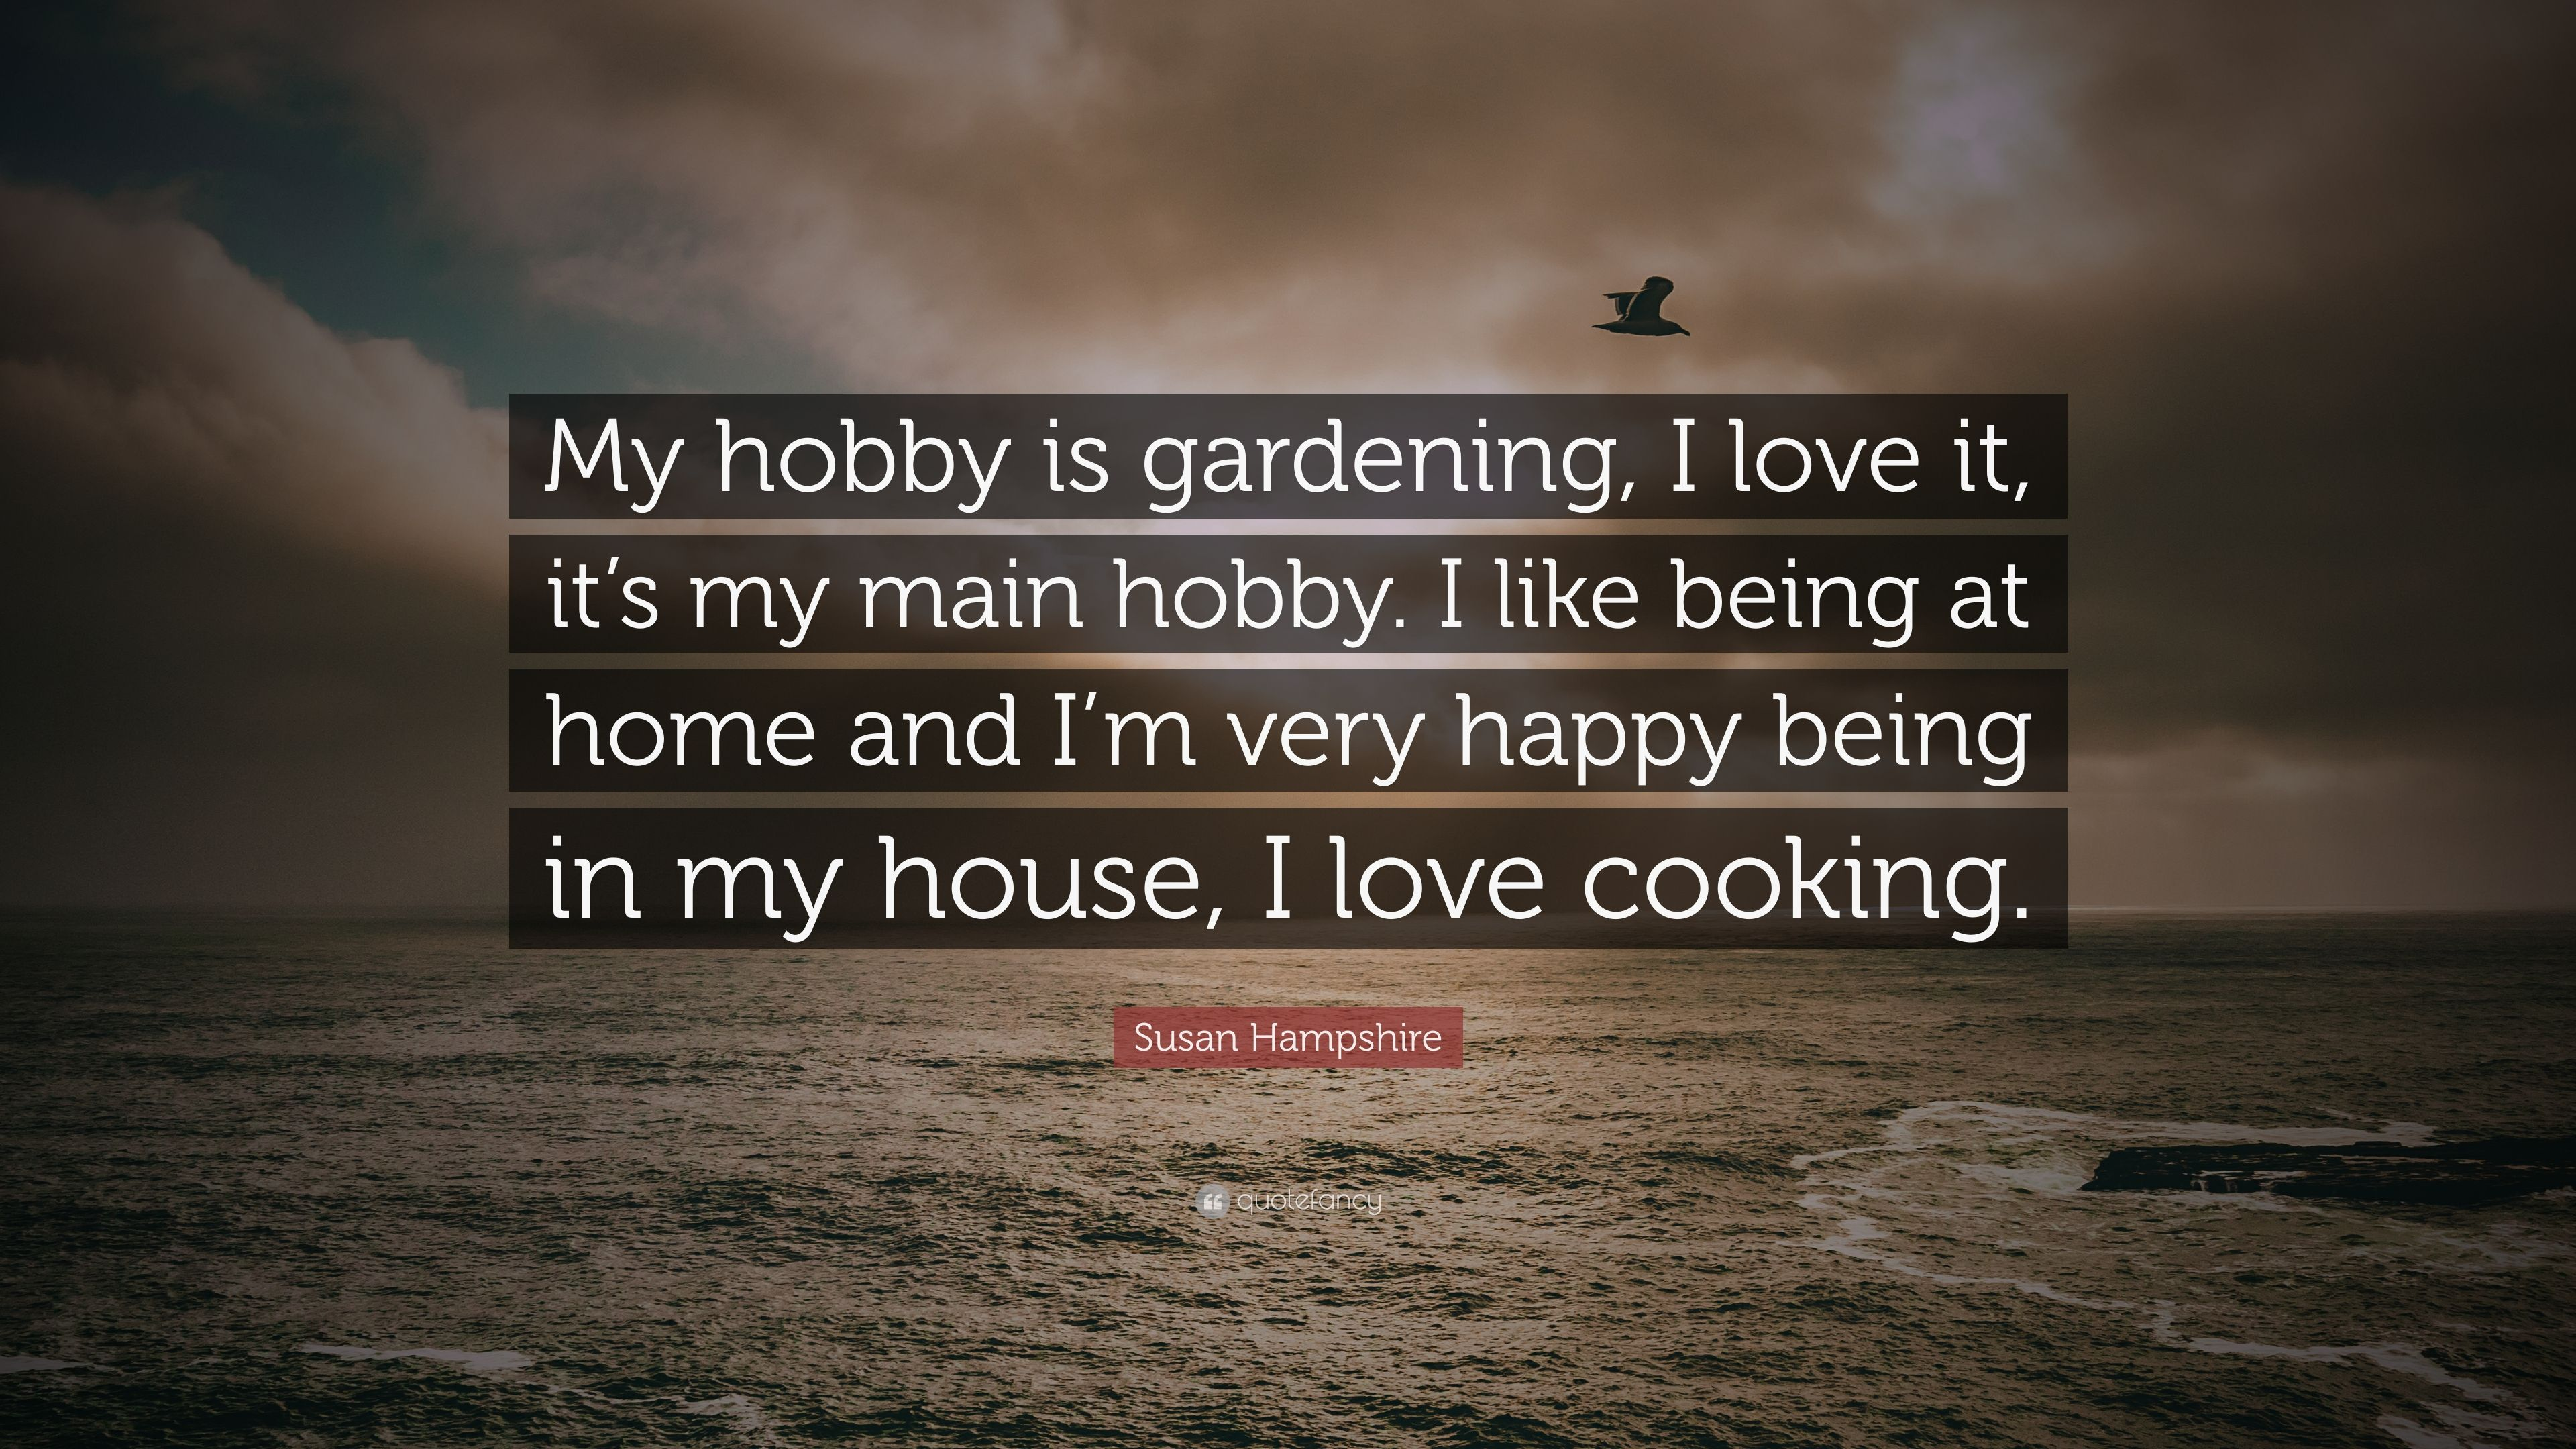 5 New Reasons Why You Should Choose Cooking As A Hobby!